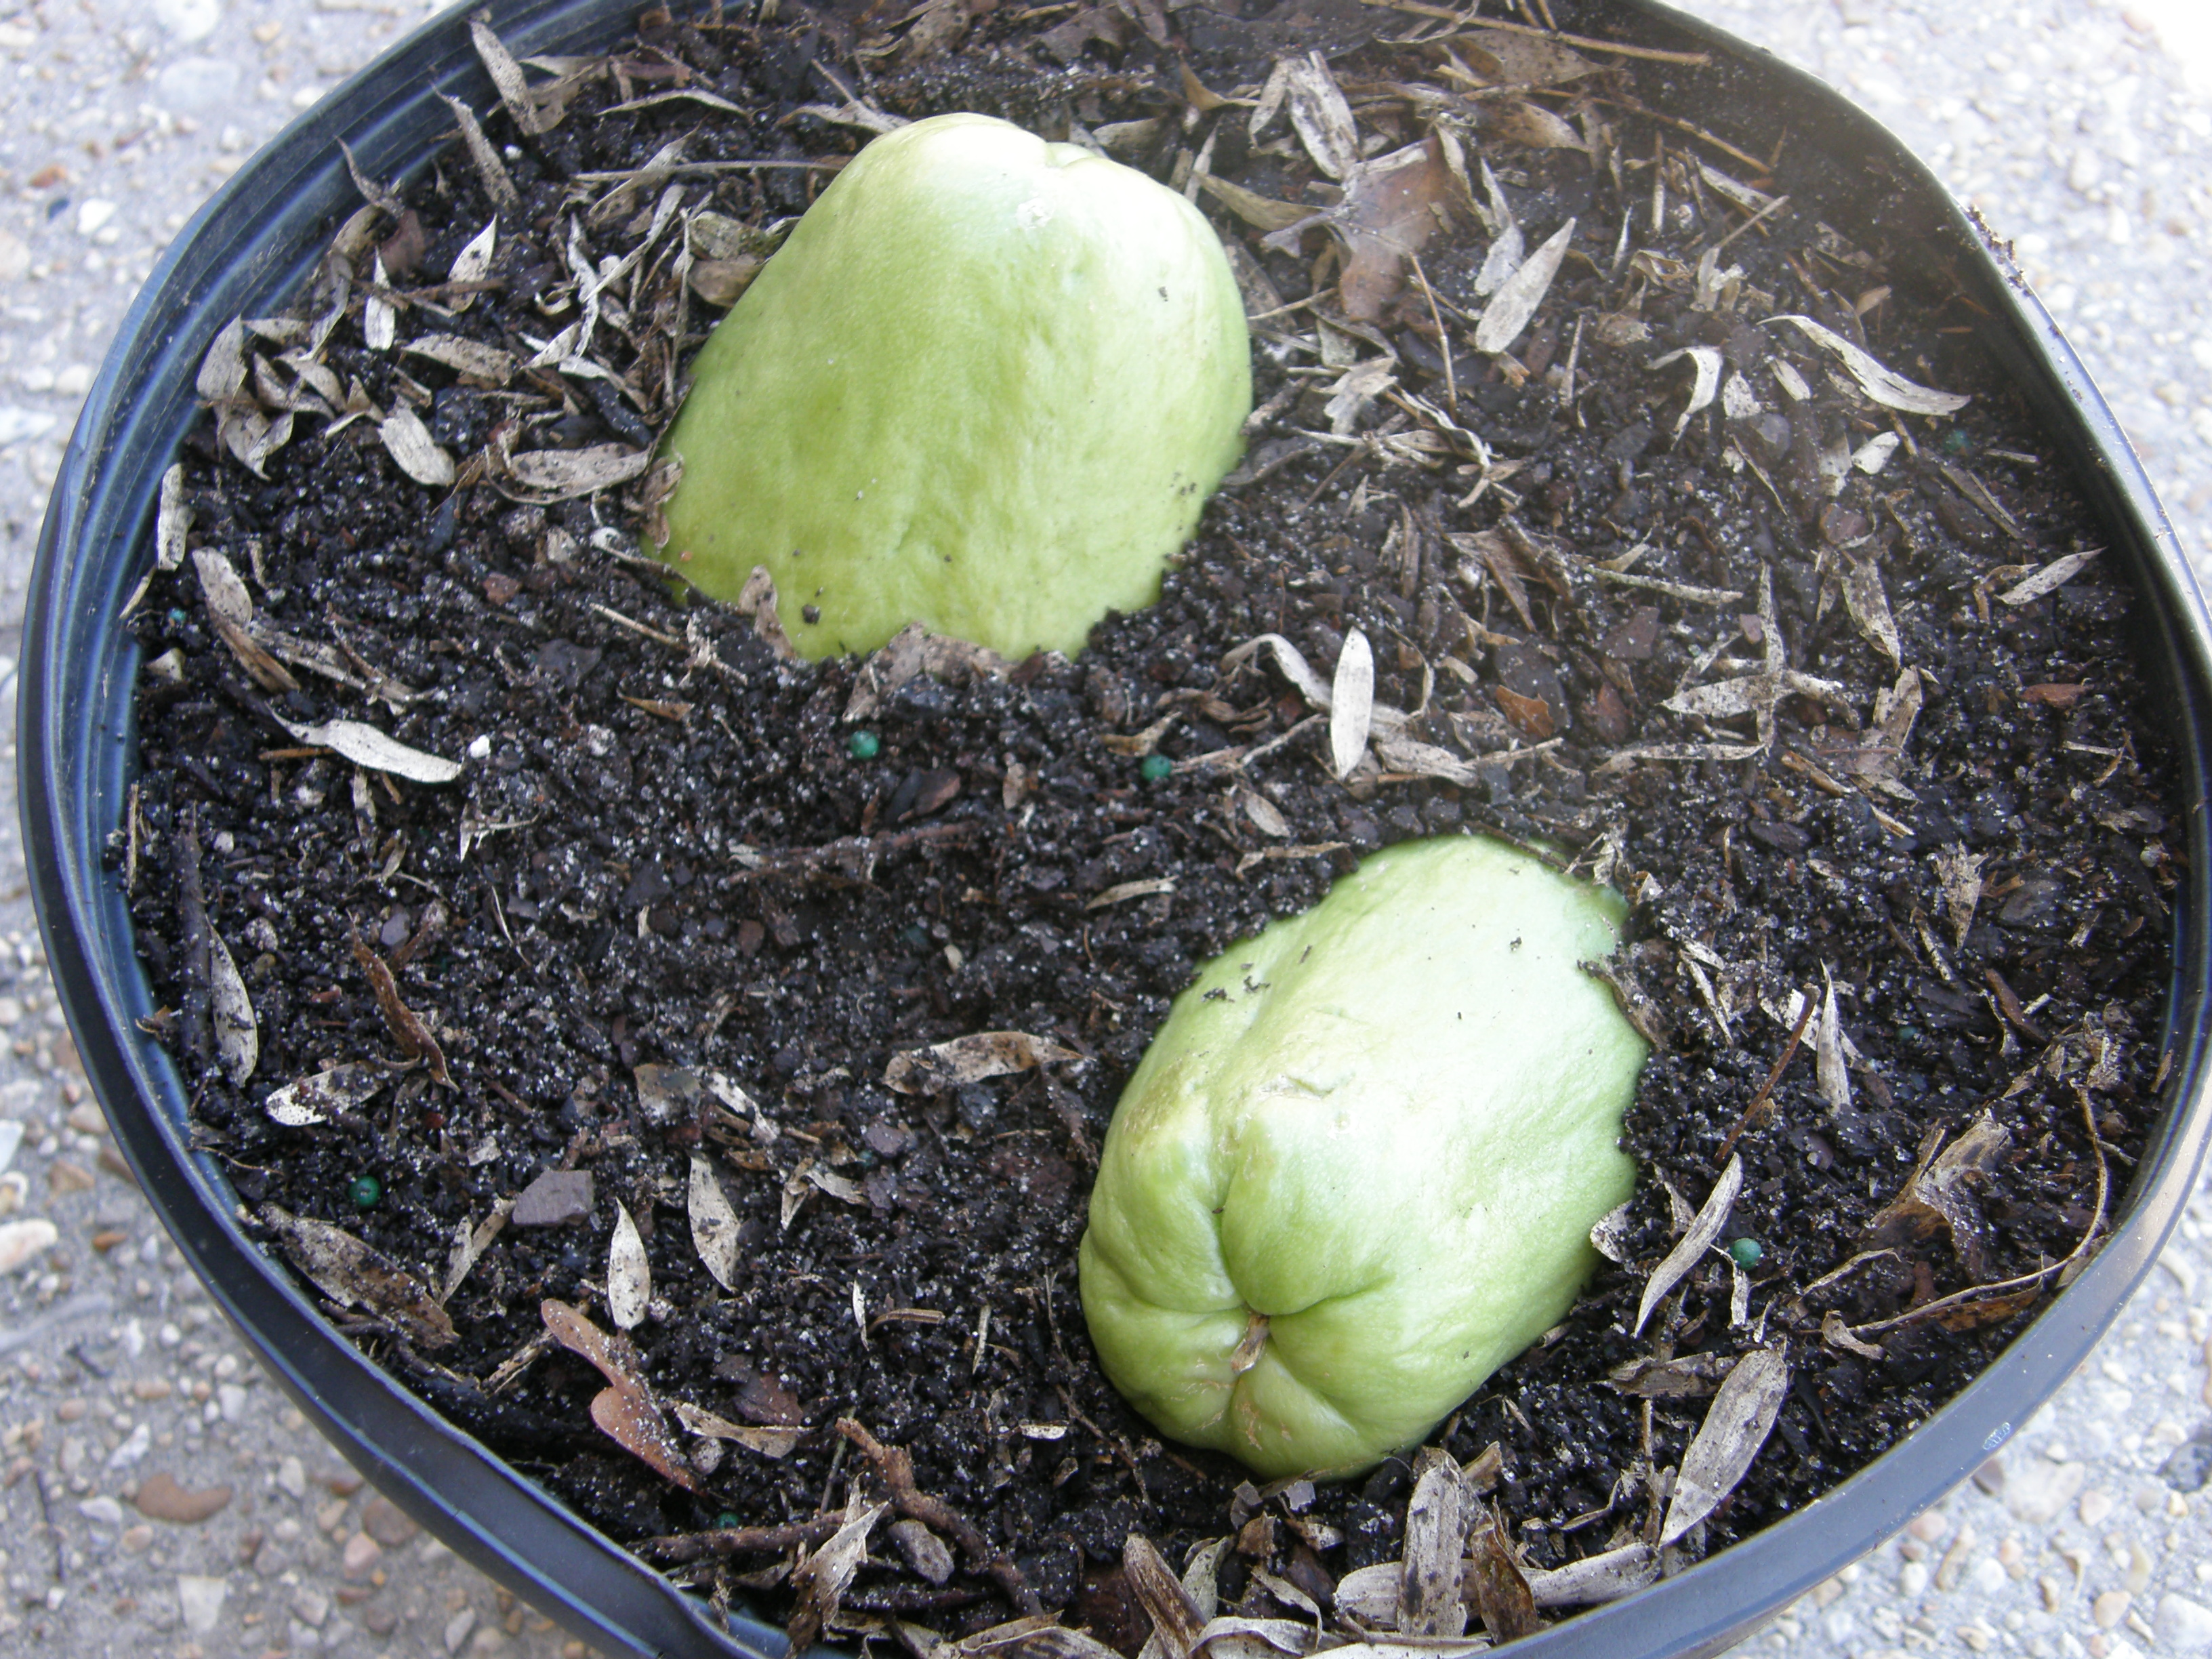 Plant mirlitons with the stem end or broad end down. Roots and shoots will emerge from the soil in a